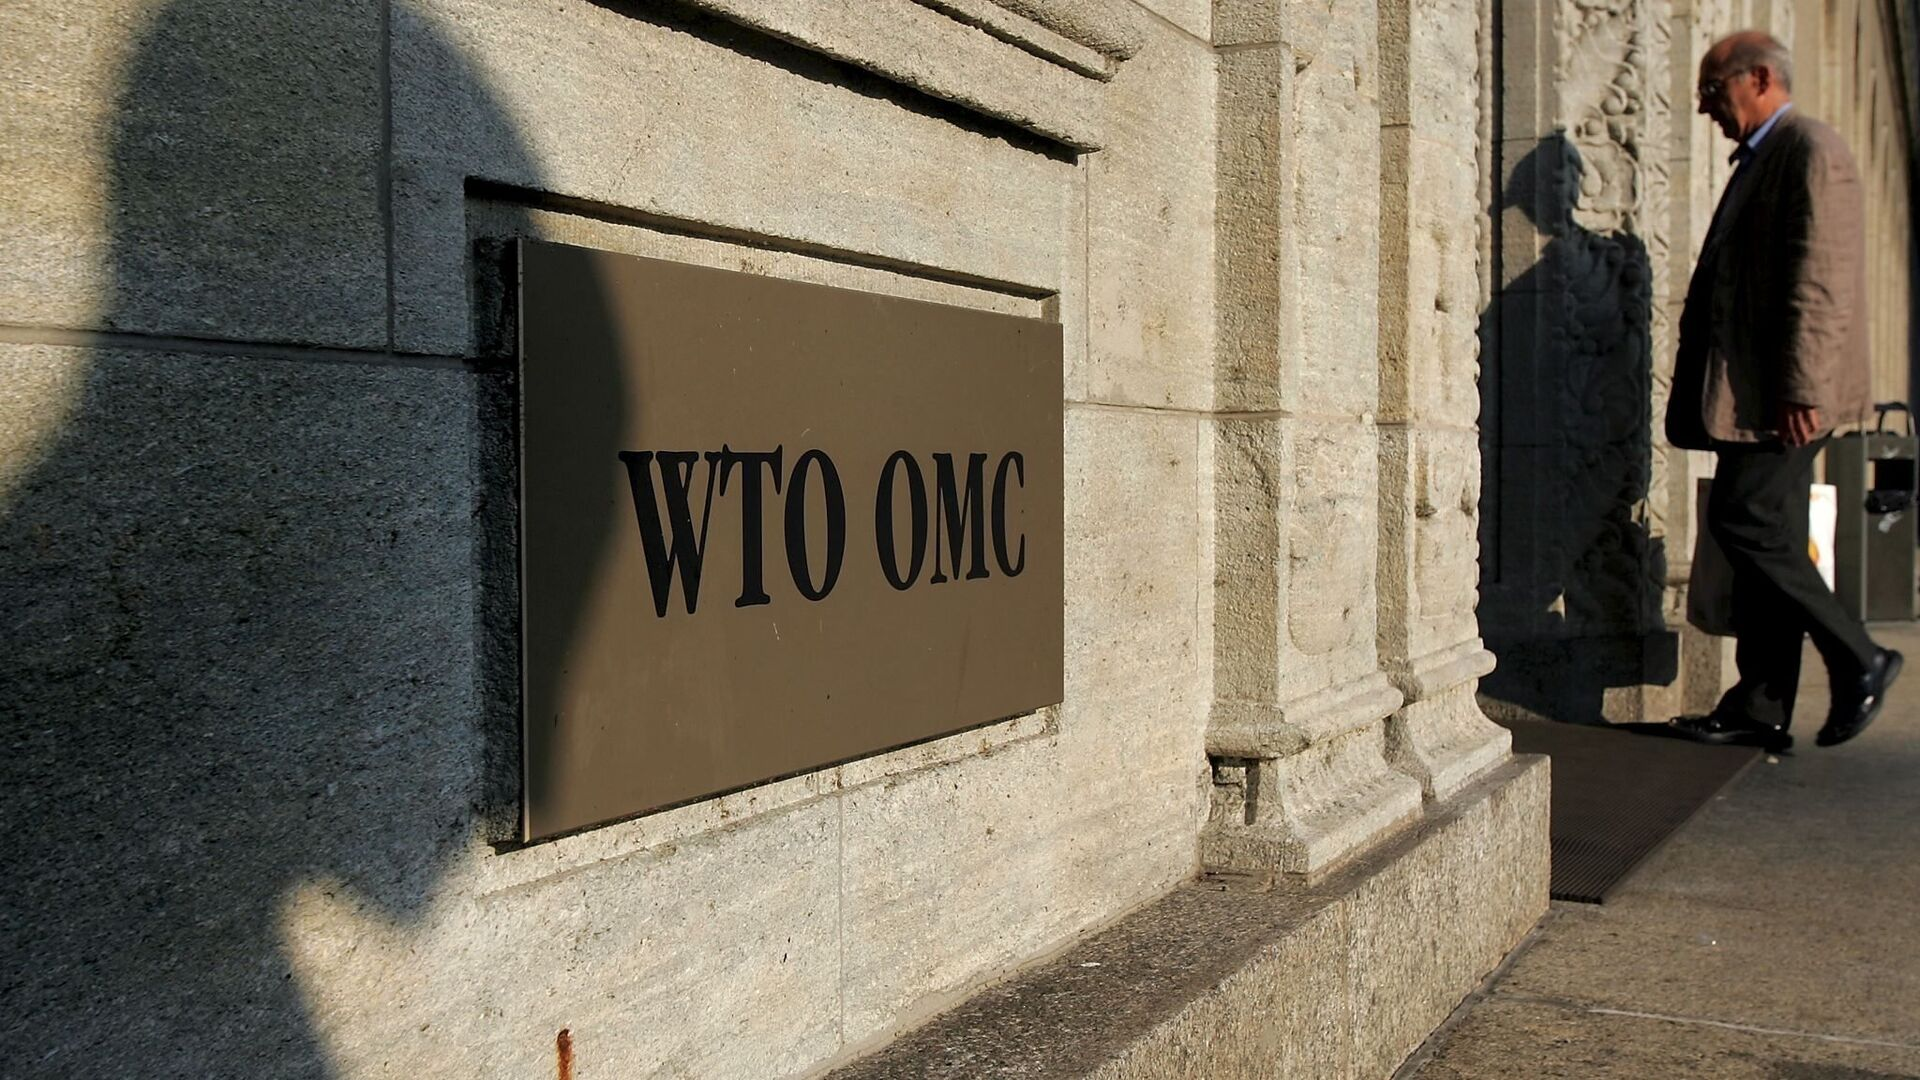 The shadow of a sculpture is reflected on the World Trade Organisation, WTO sign near the entrance of the headquarters, in Geneva (File) - Sputnik Mundo, 1920, 27.03.2021